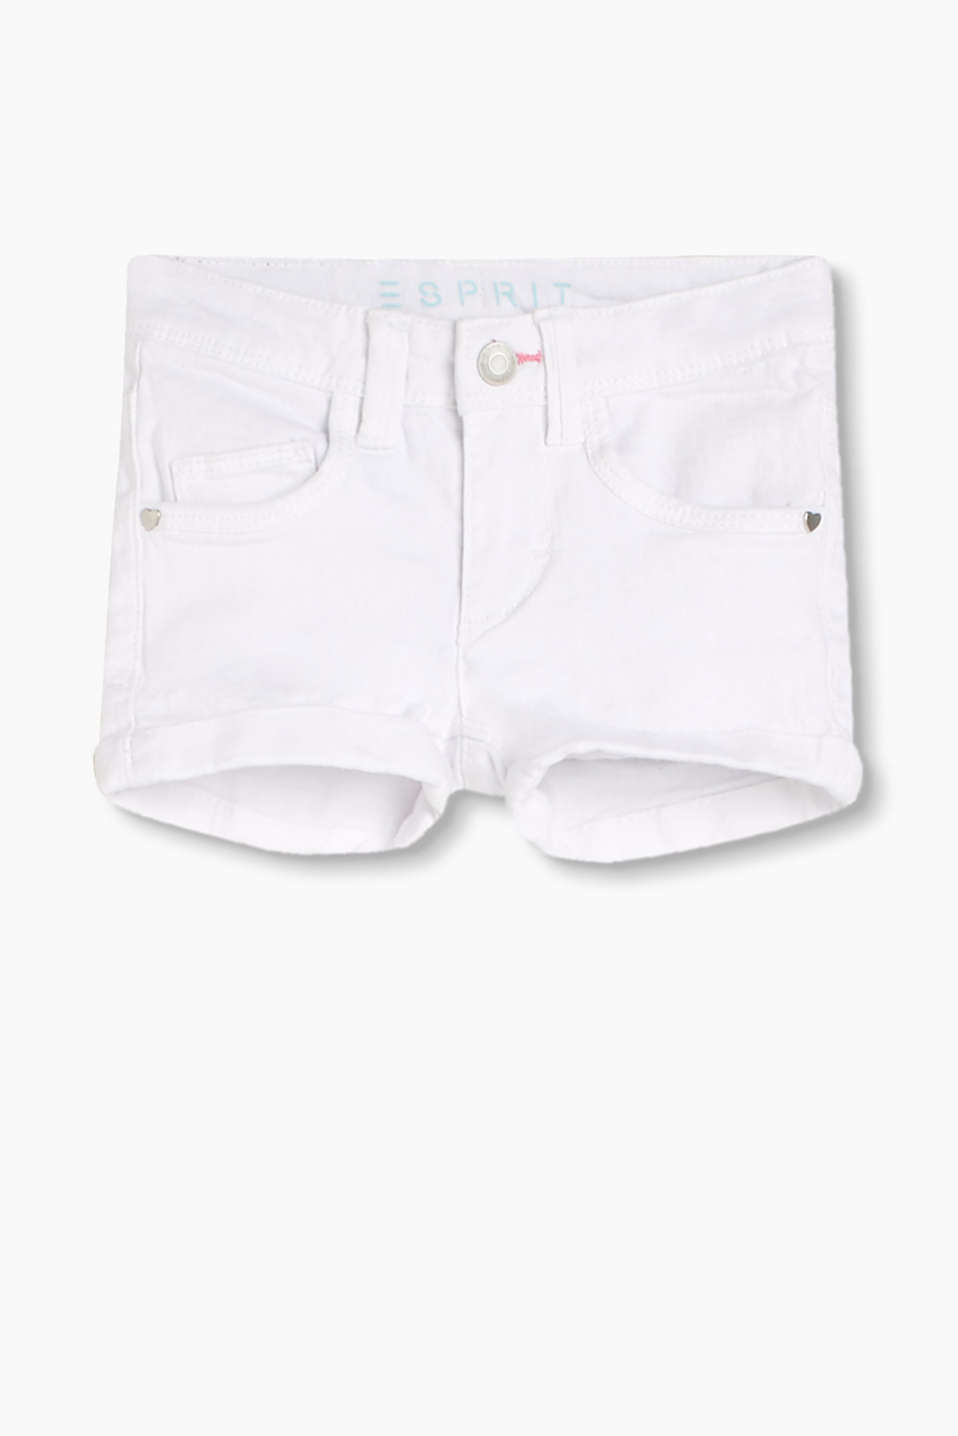 En coton à teneur en stretch confortable : le short de style 5 poches